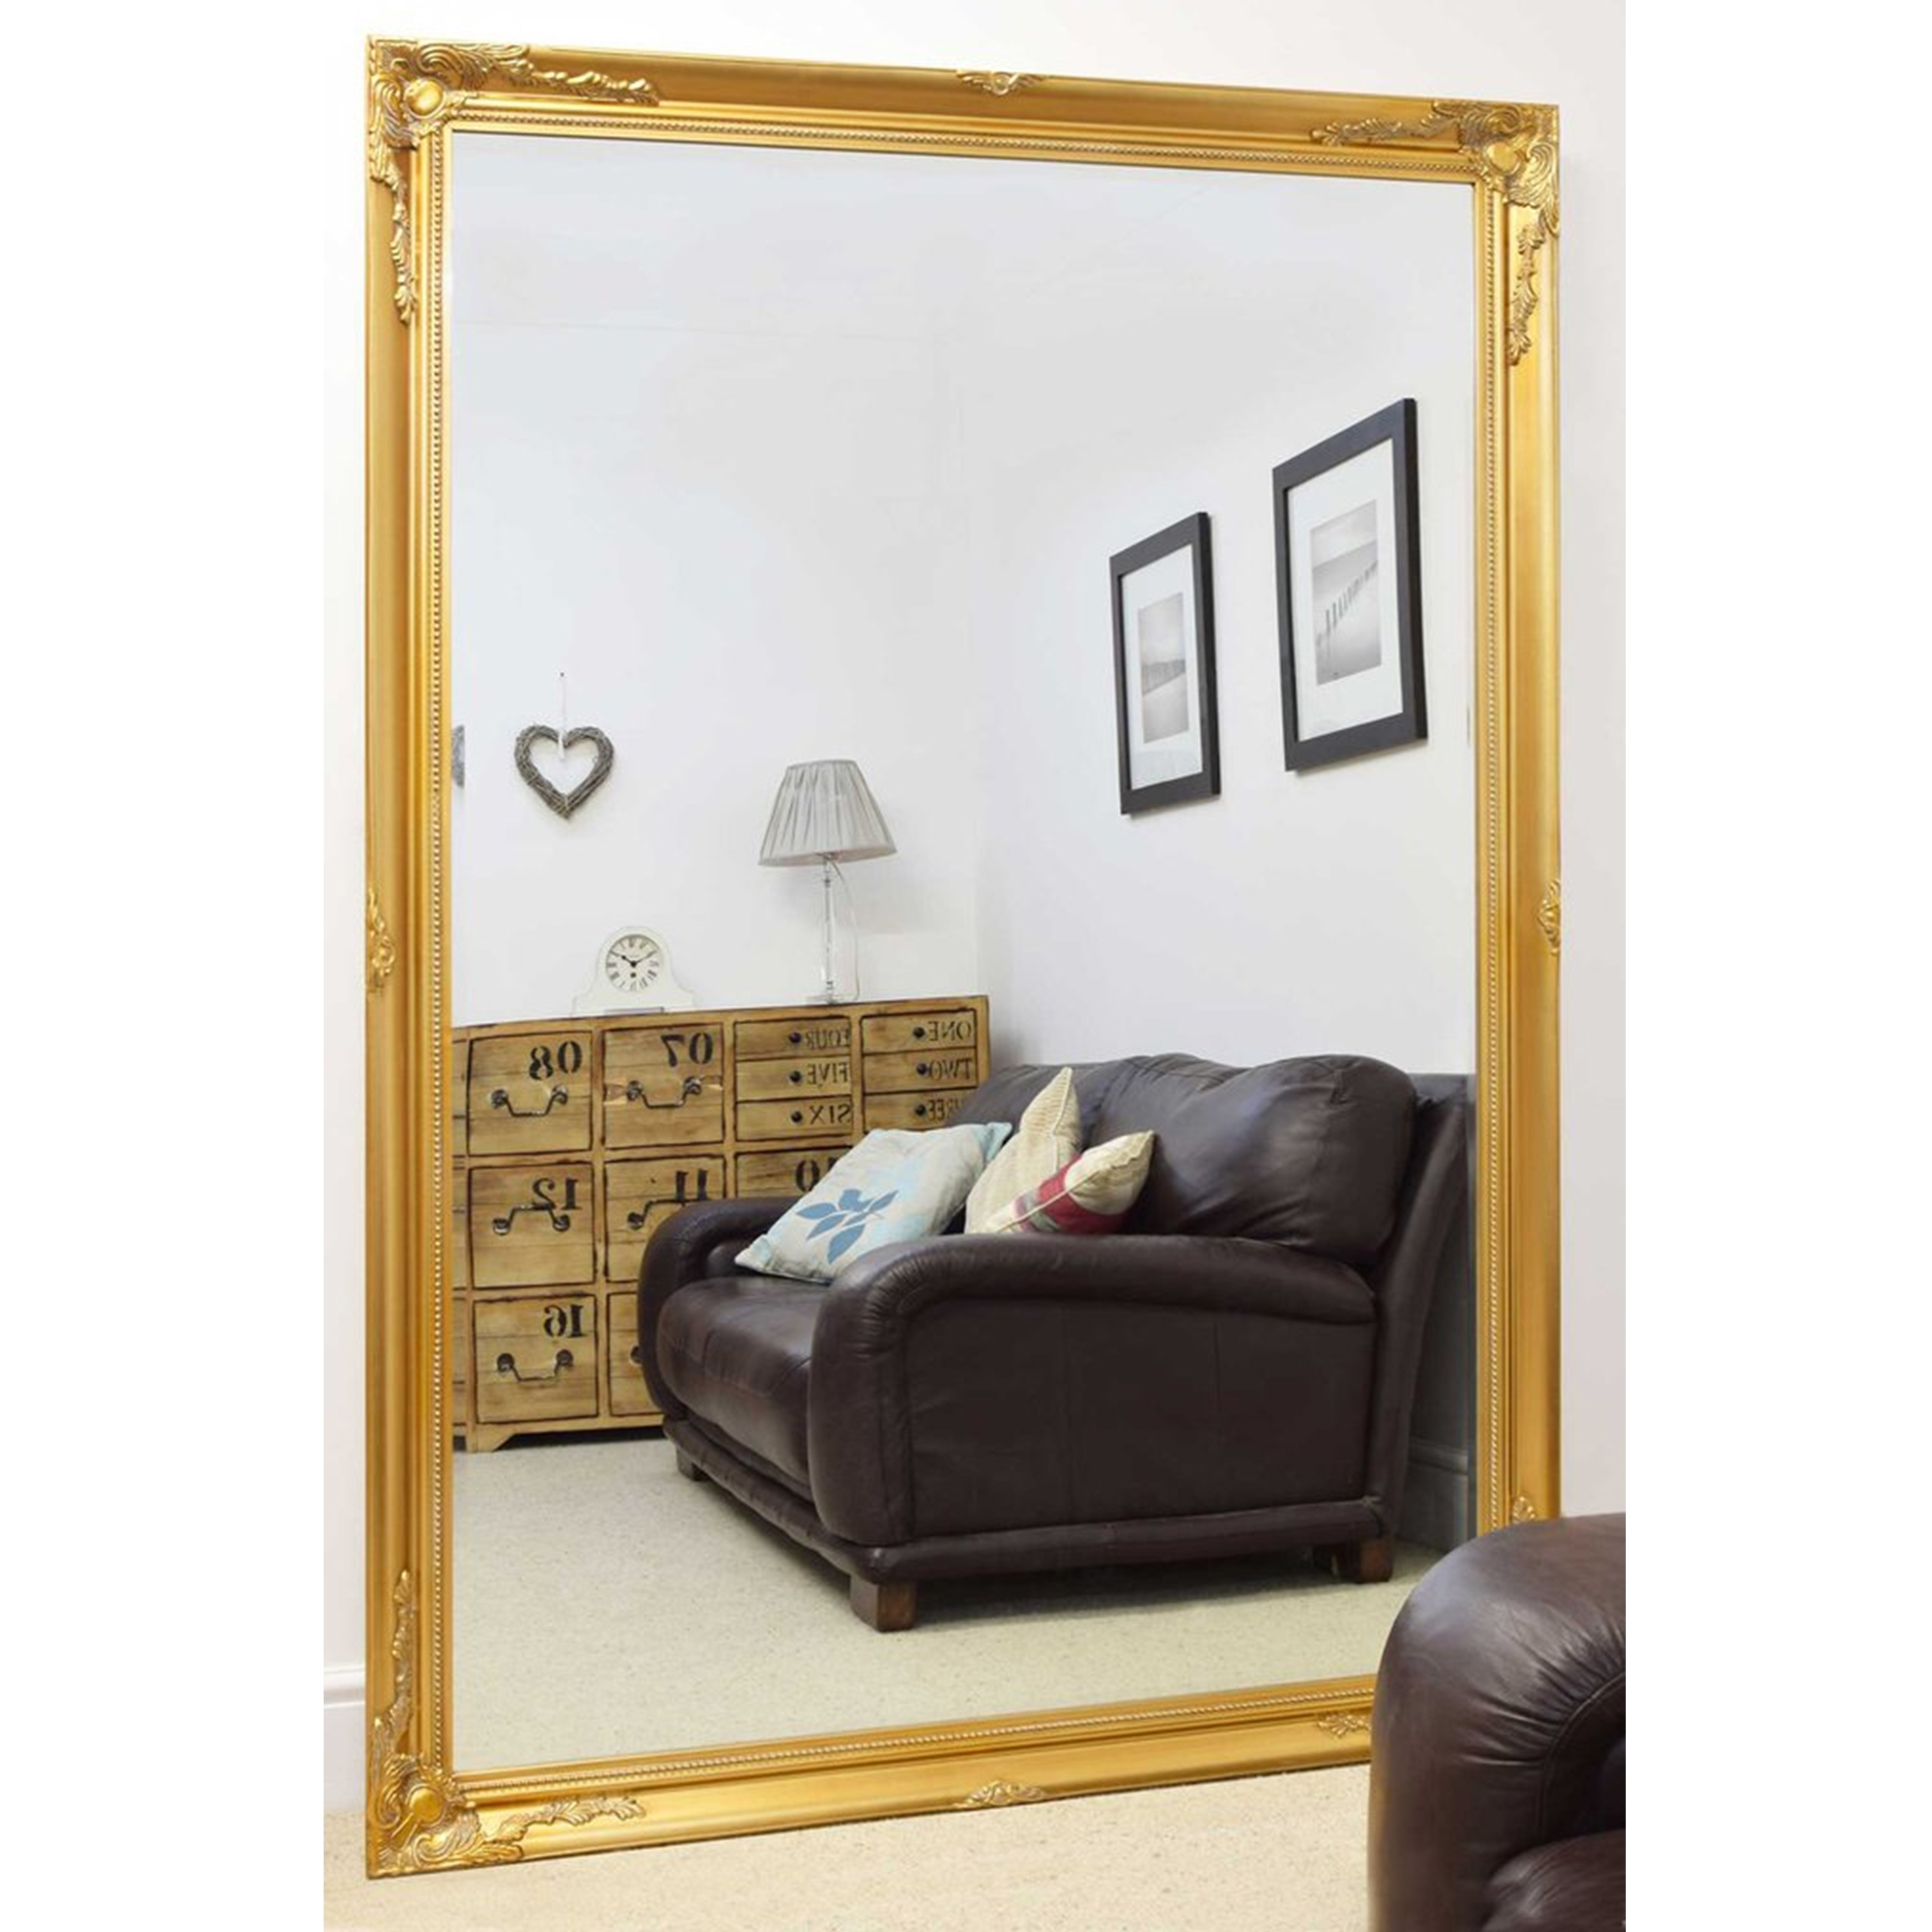 acrylic the create p floral cm decorative mirror pattern wall daisy us save consist on elements exclusive which en decor modern mirrors and of